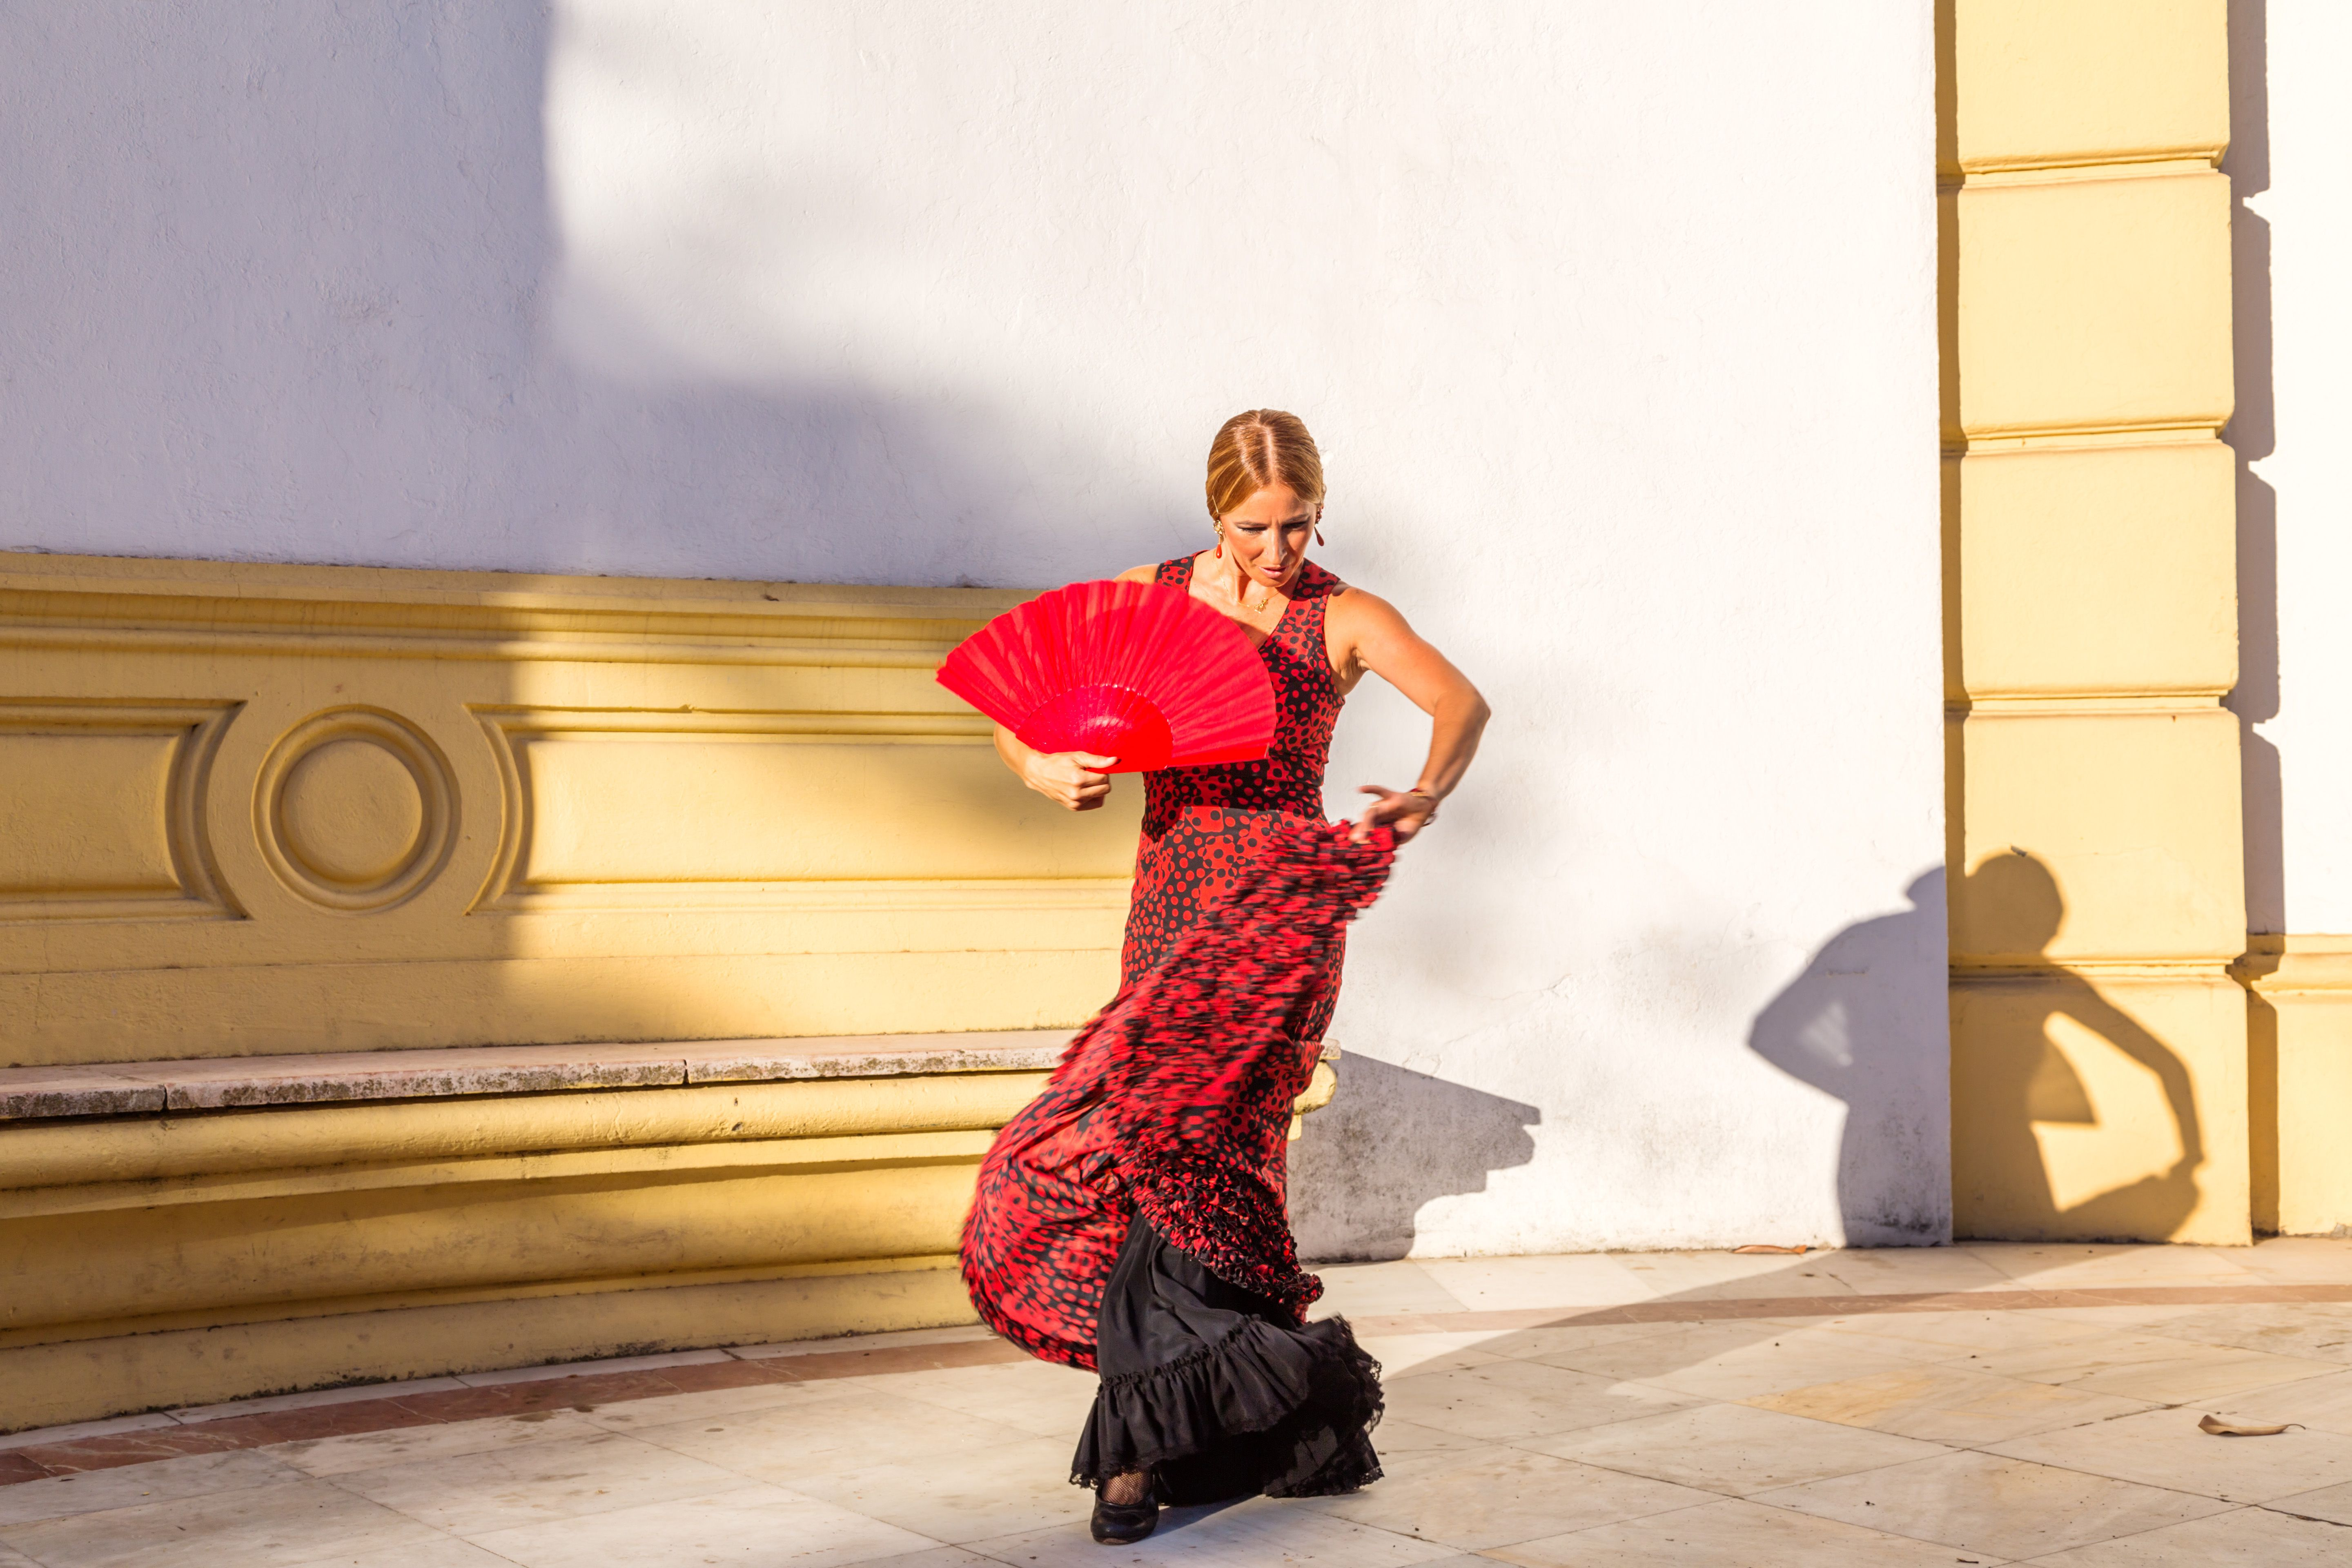 Flamenco dancer performing outdoors in Seville, Andalusia, Spain